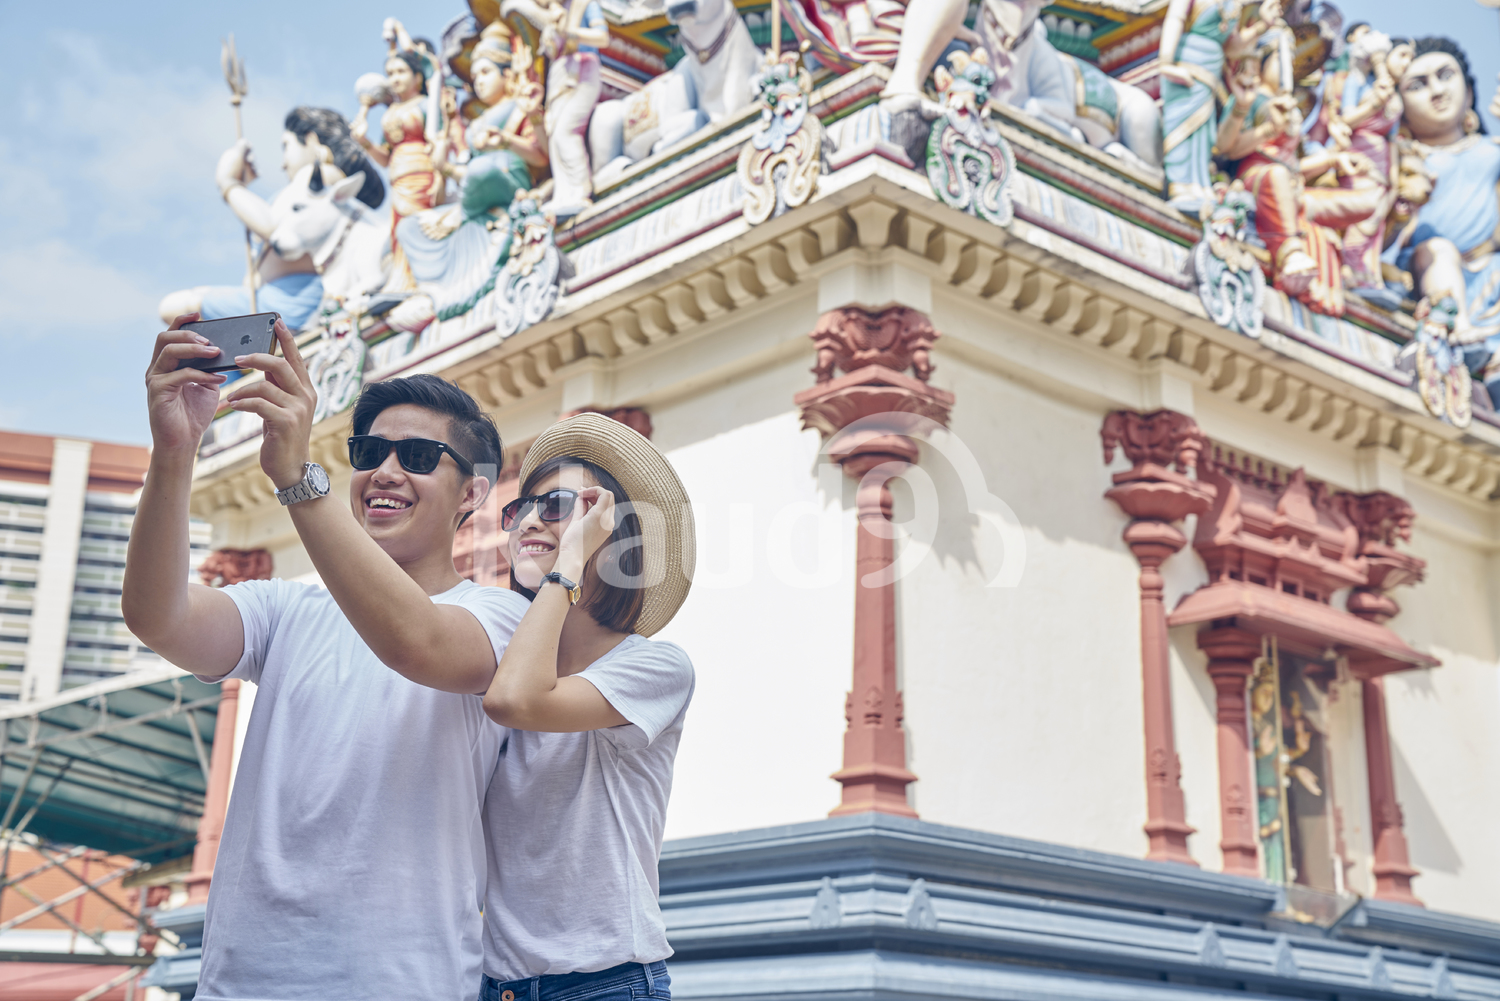 Happy couple taking a selfie in Sri Mariamman Temple, Singapore